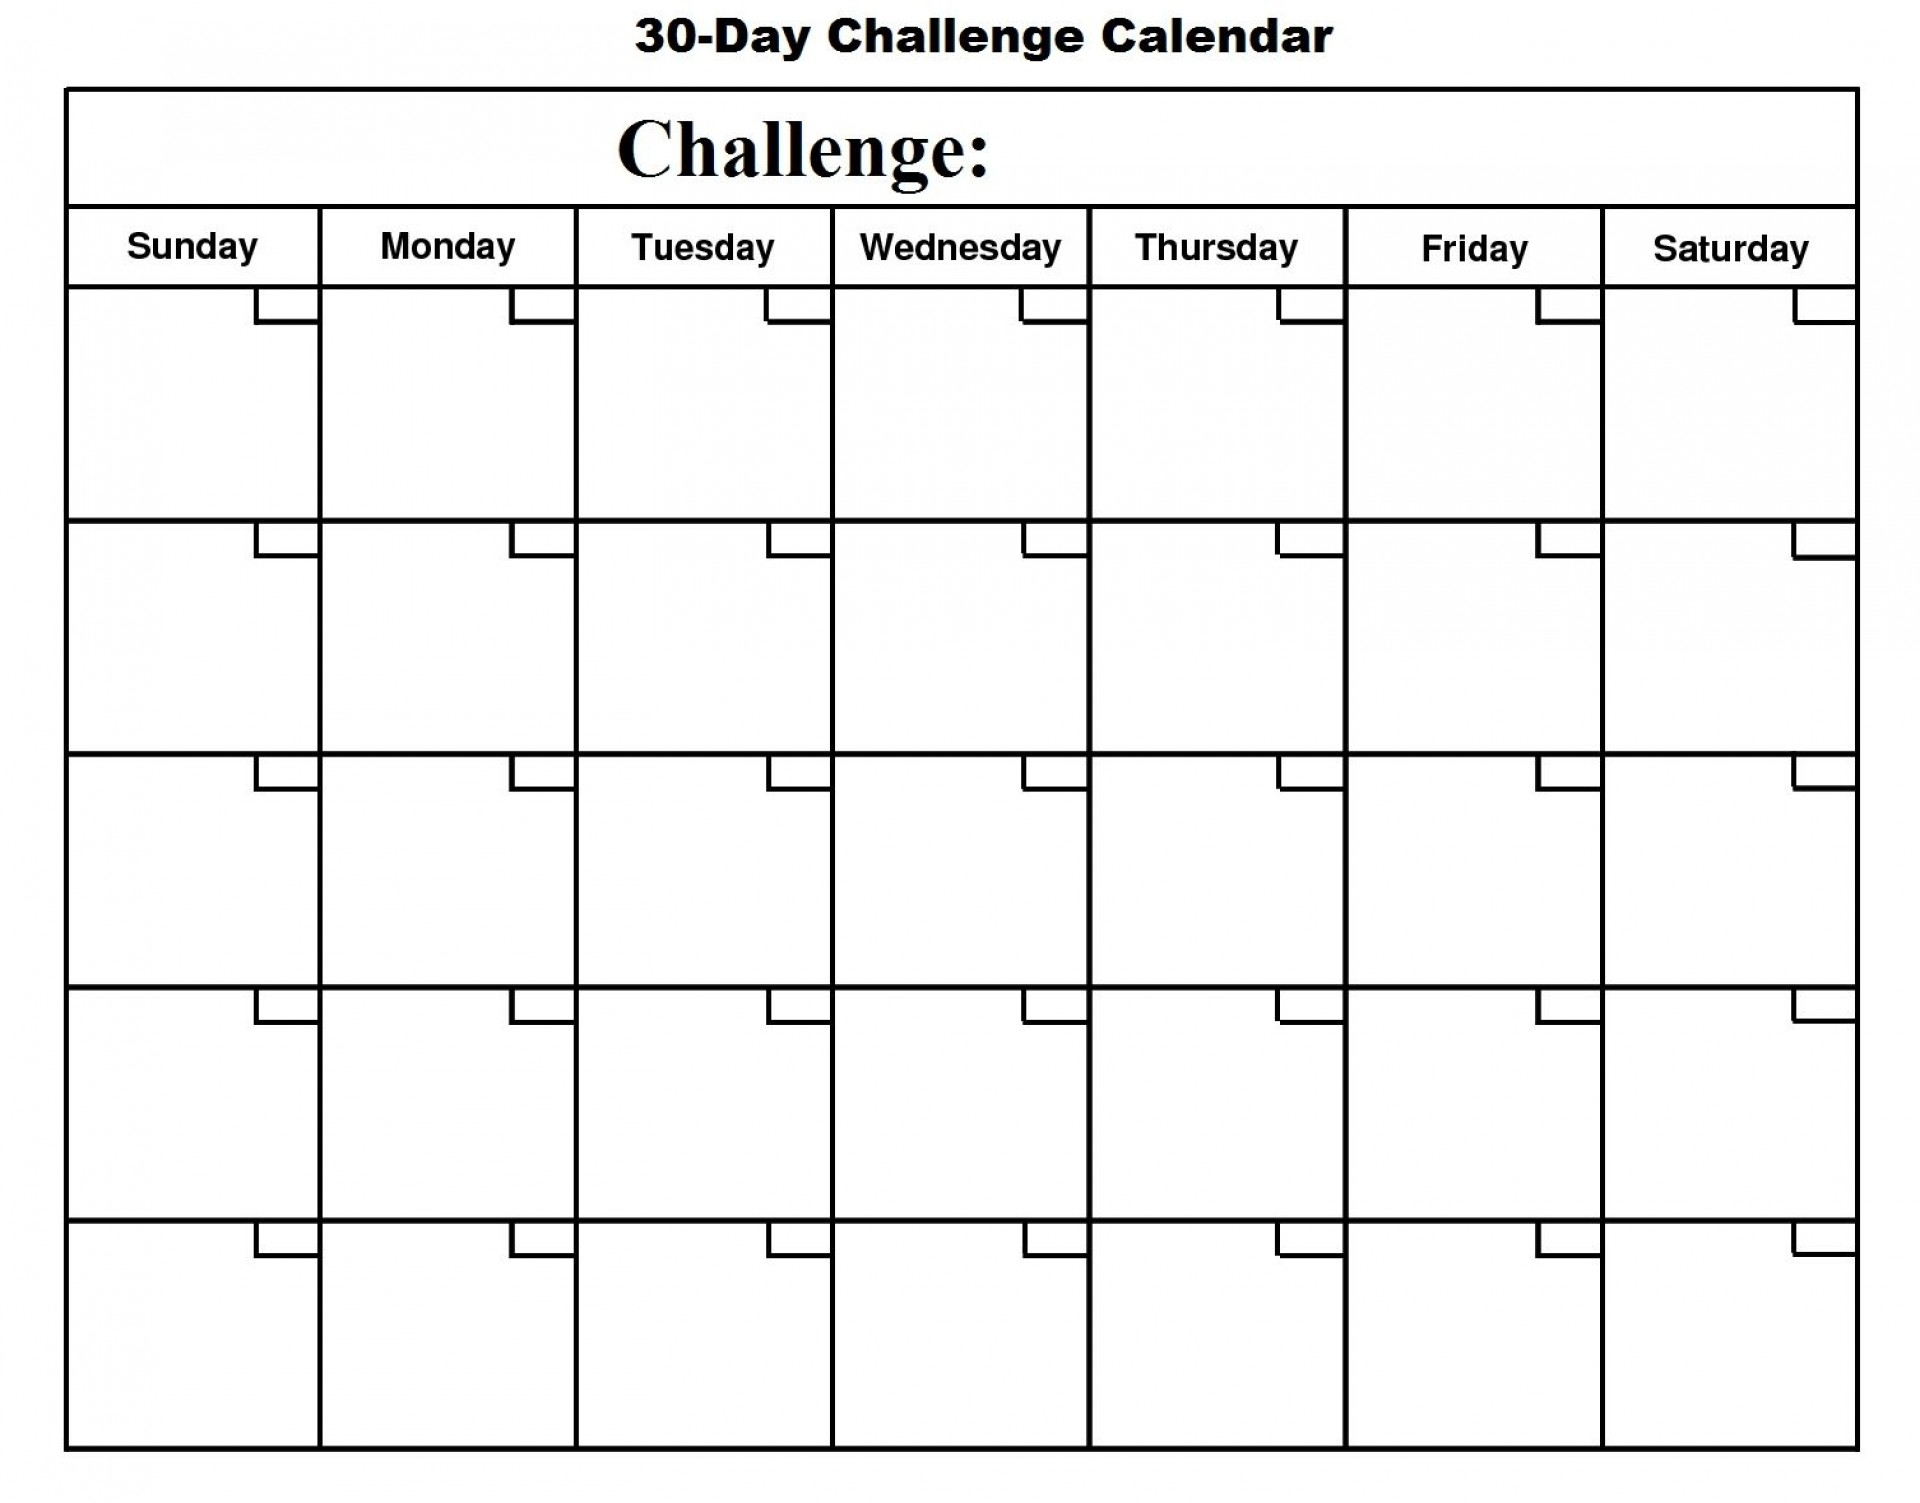 002 Day Challenge Calendar Template Ideas Stupendous 30 within Blank 30 Day Challenge Calendar